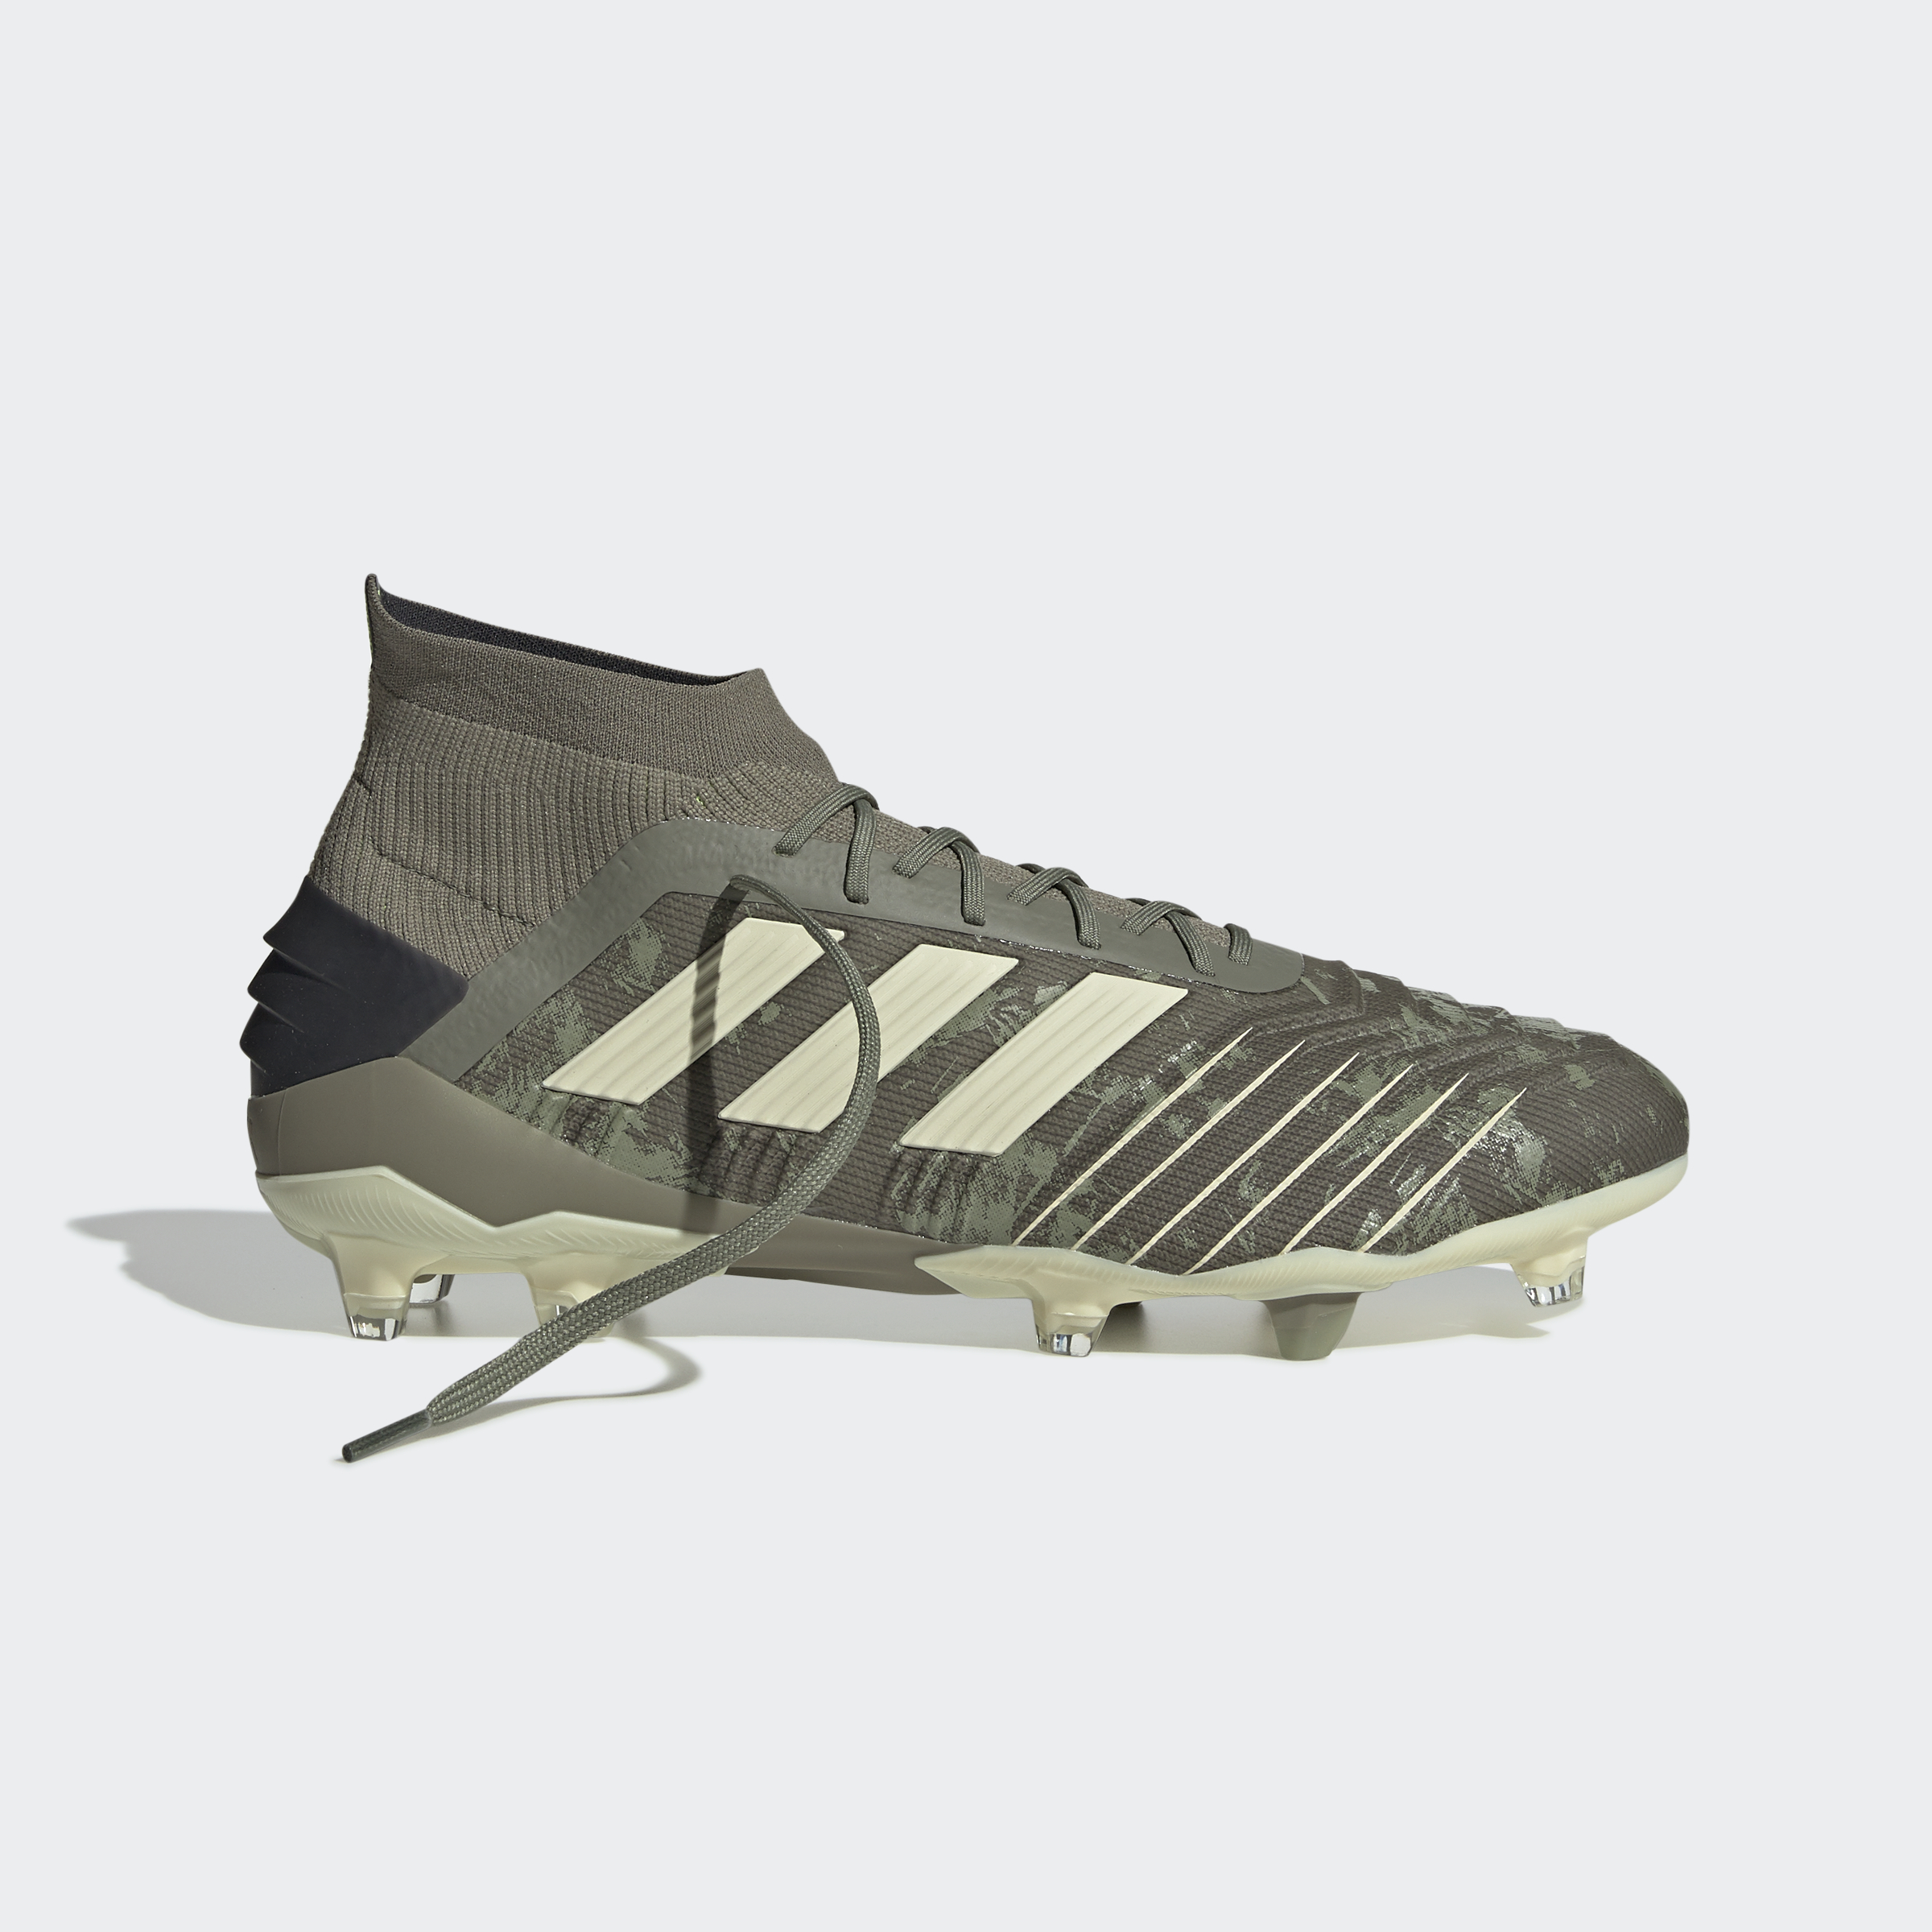 adidas-Predator-19-1-Firm-Ground-Cleats-Football-Boots thumbnail 17